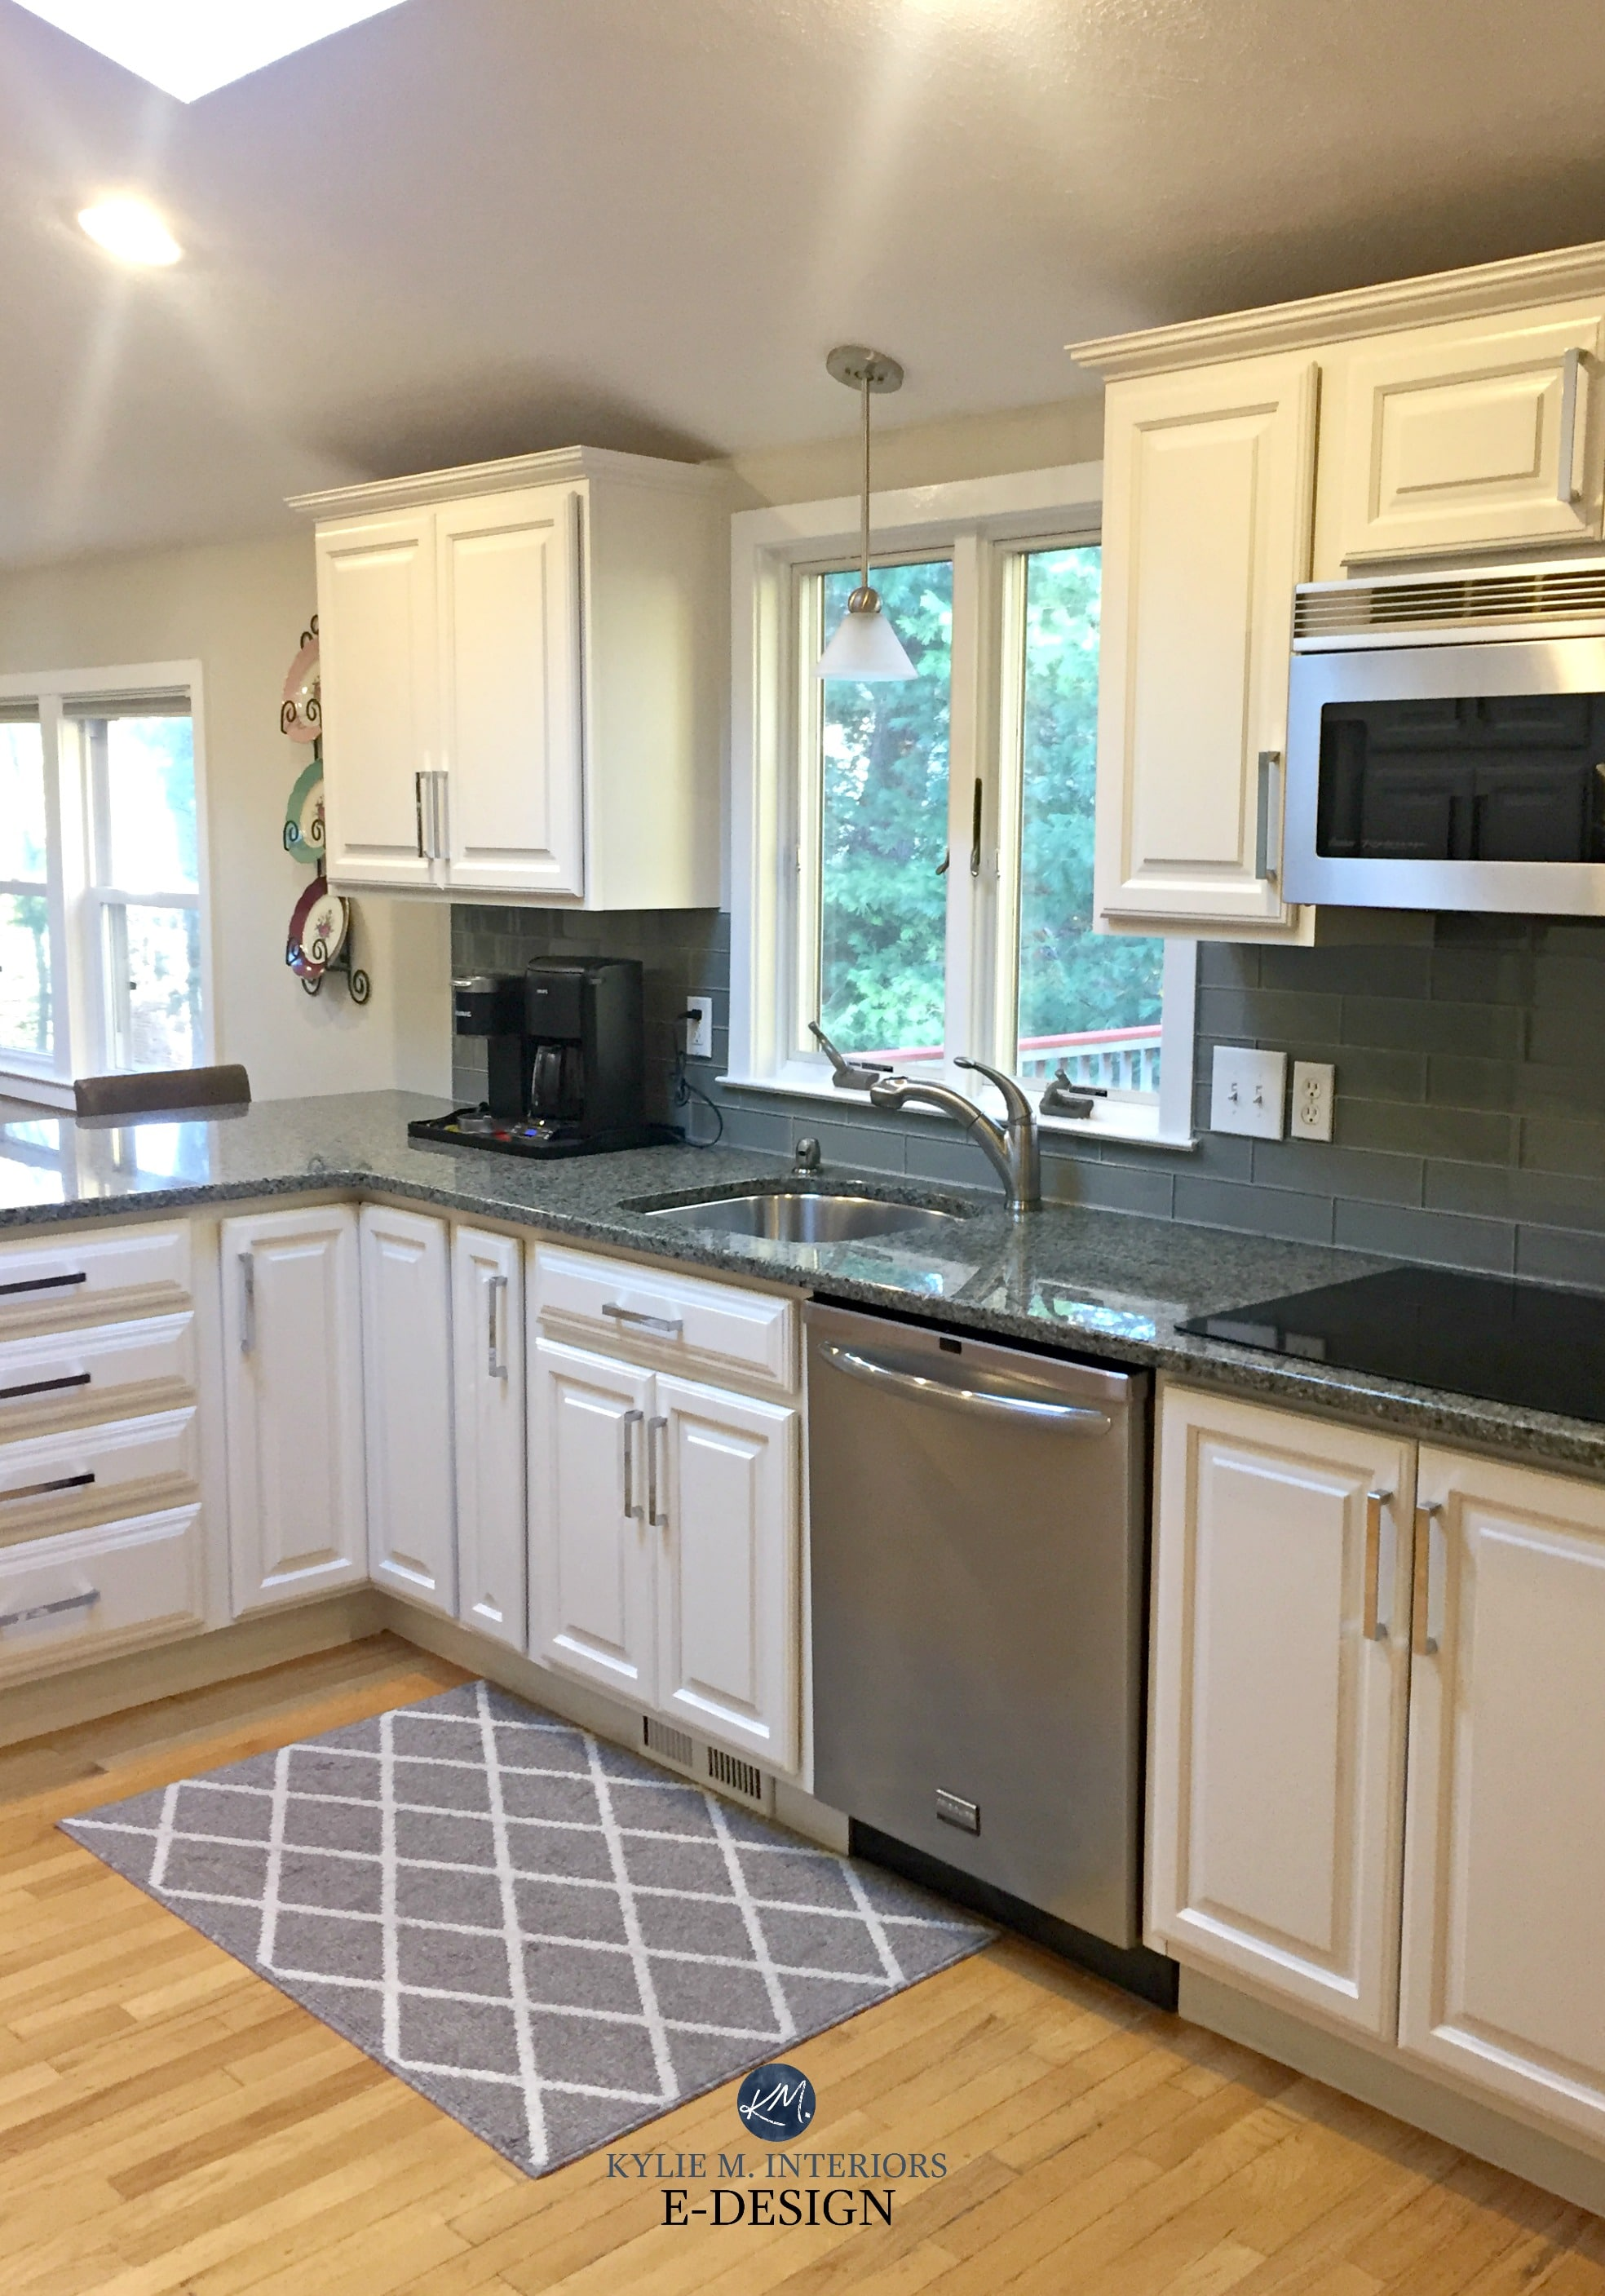 Sherwin Williams White Duck painted maple cabinets and ... on Backsplash For Maple Cabinets  id=35679